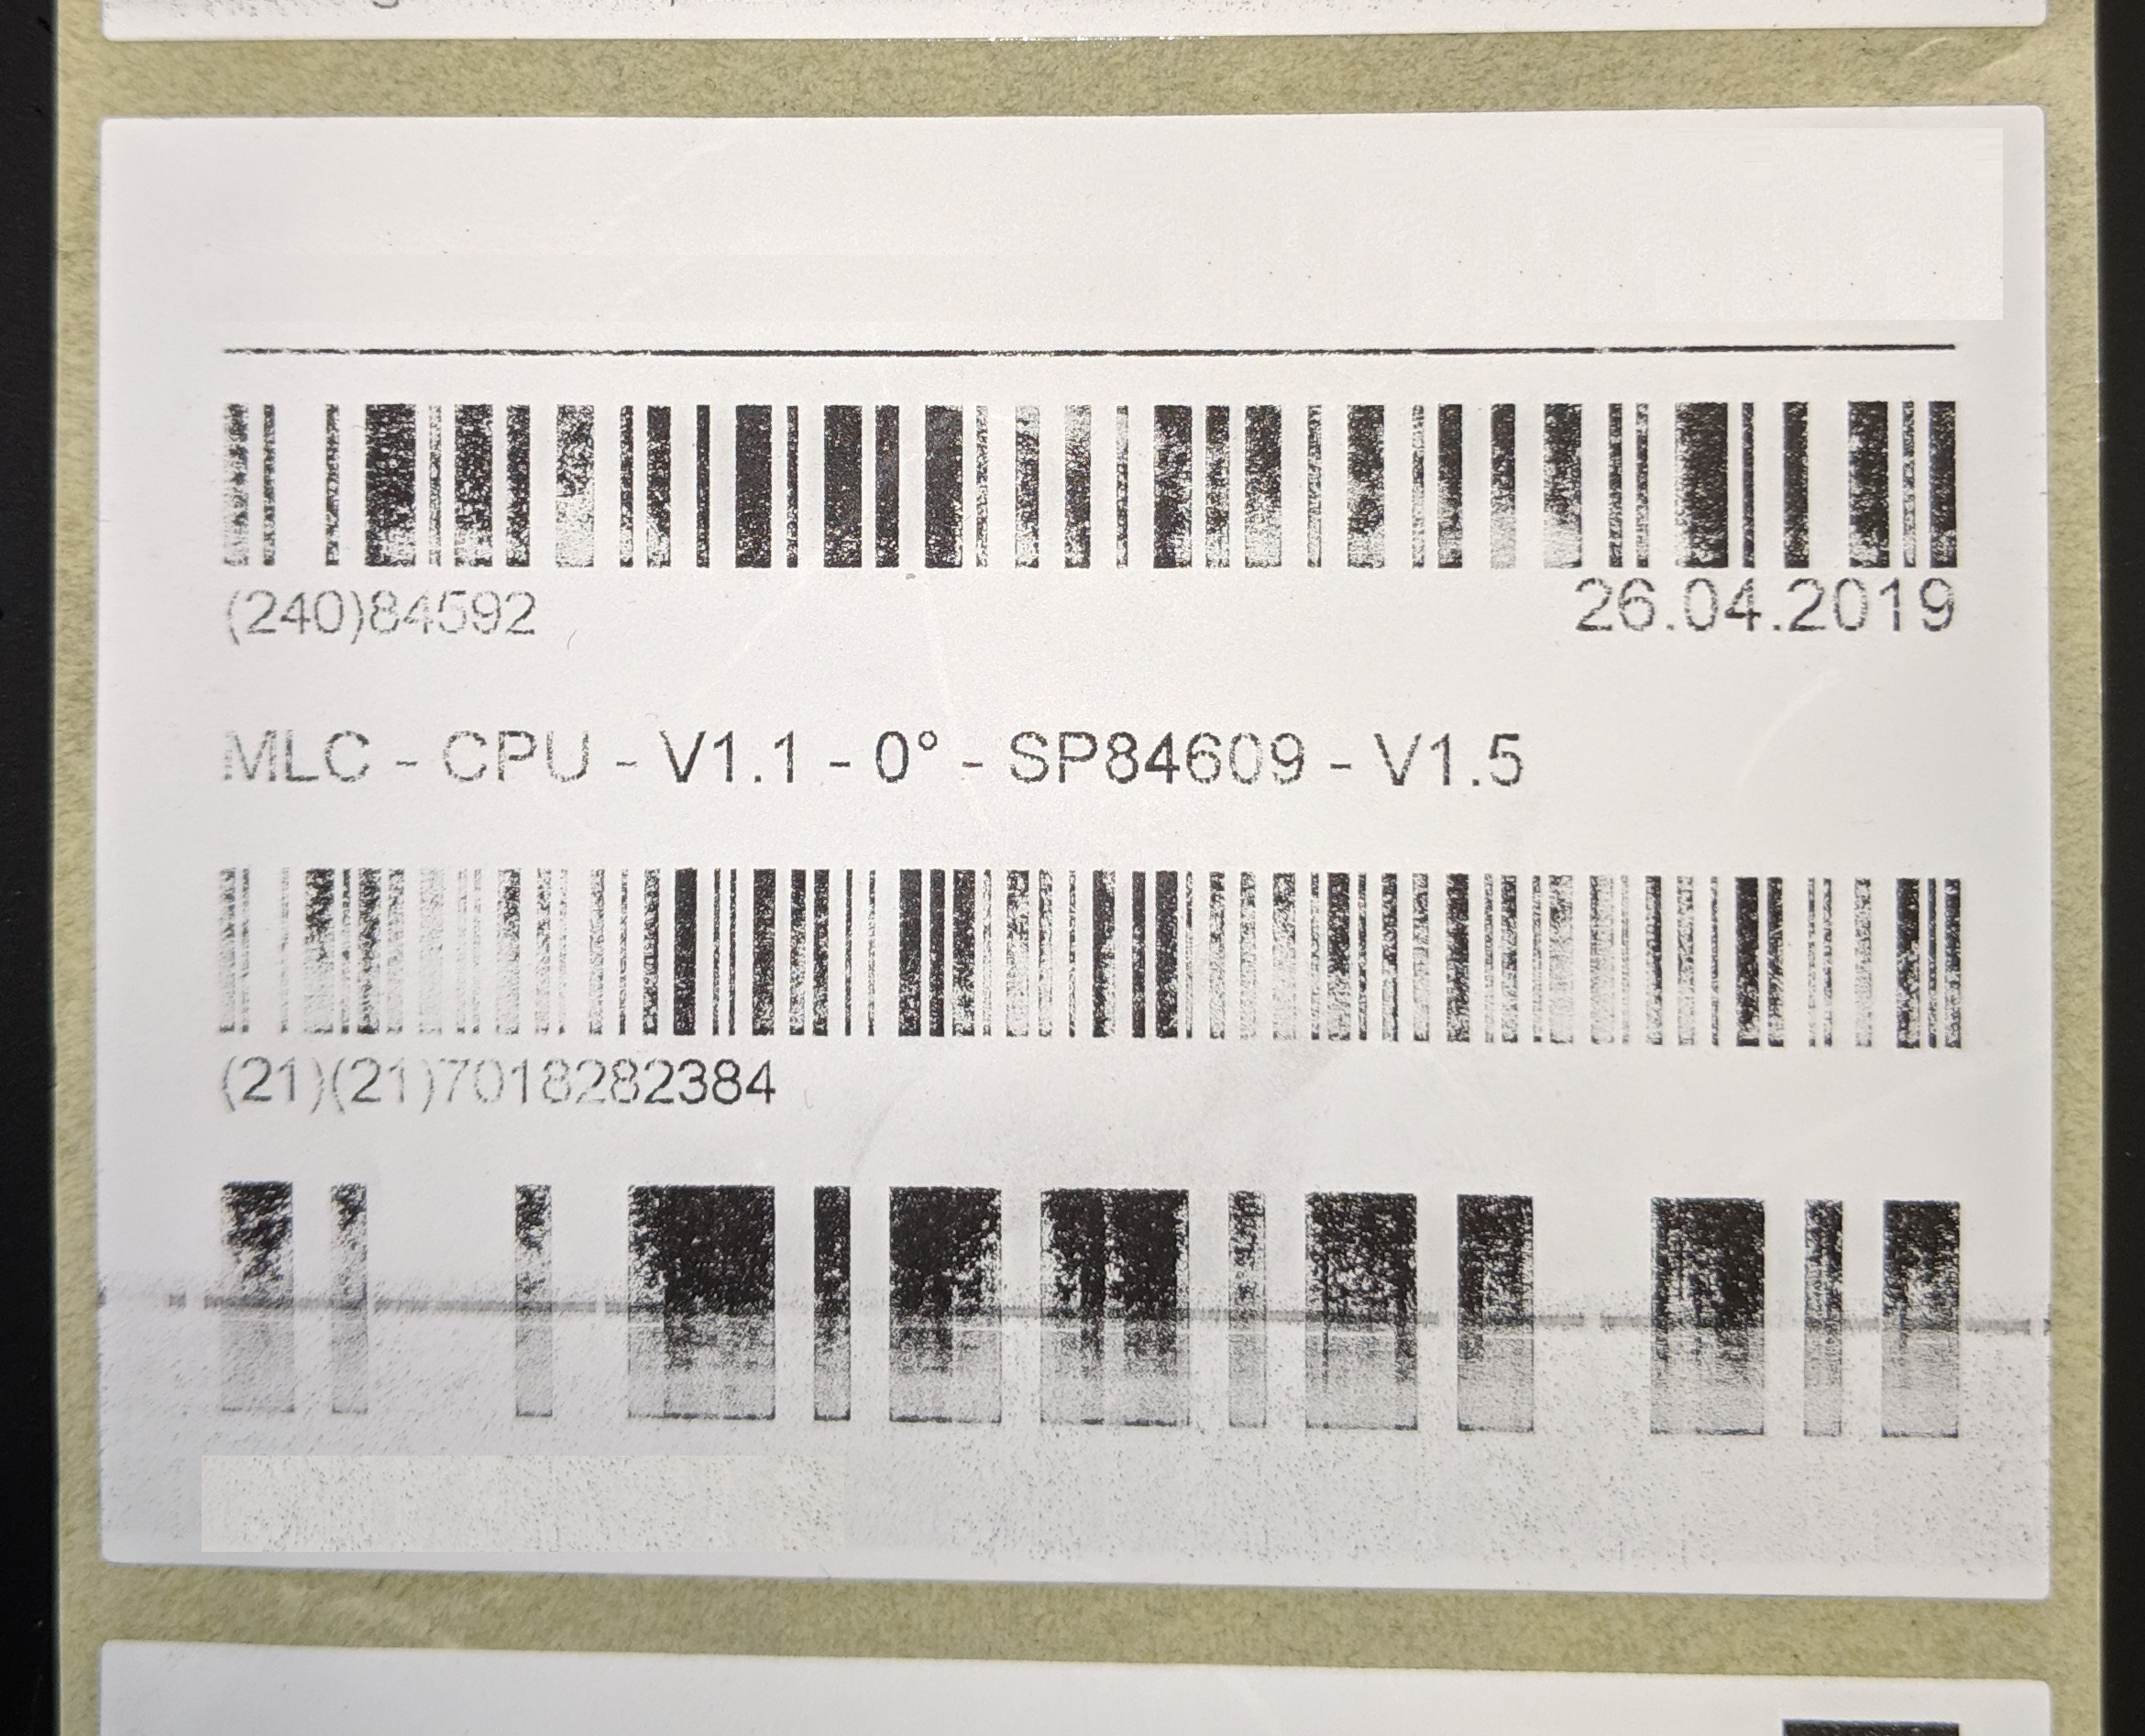 Poor Label Quality On A Toshiba Printer Thermal Printer Problem Efficient Business Integrators Support